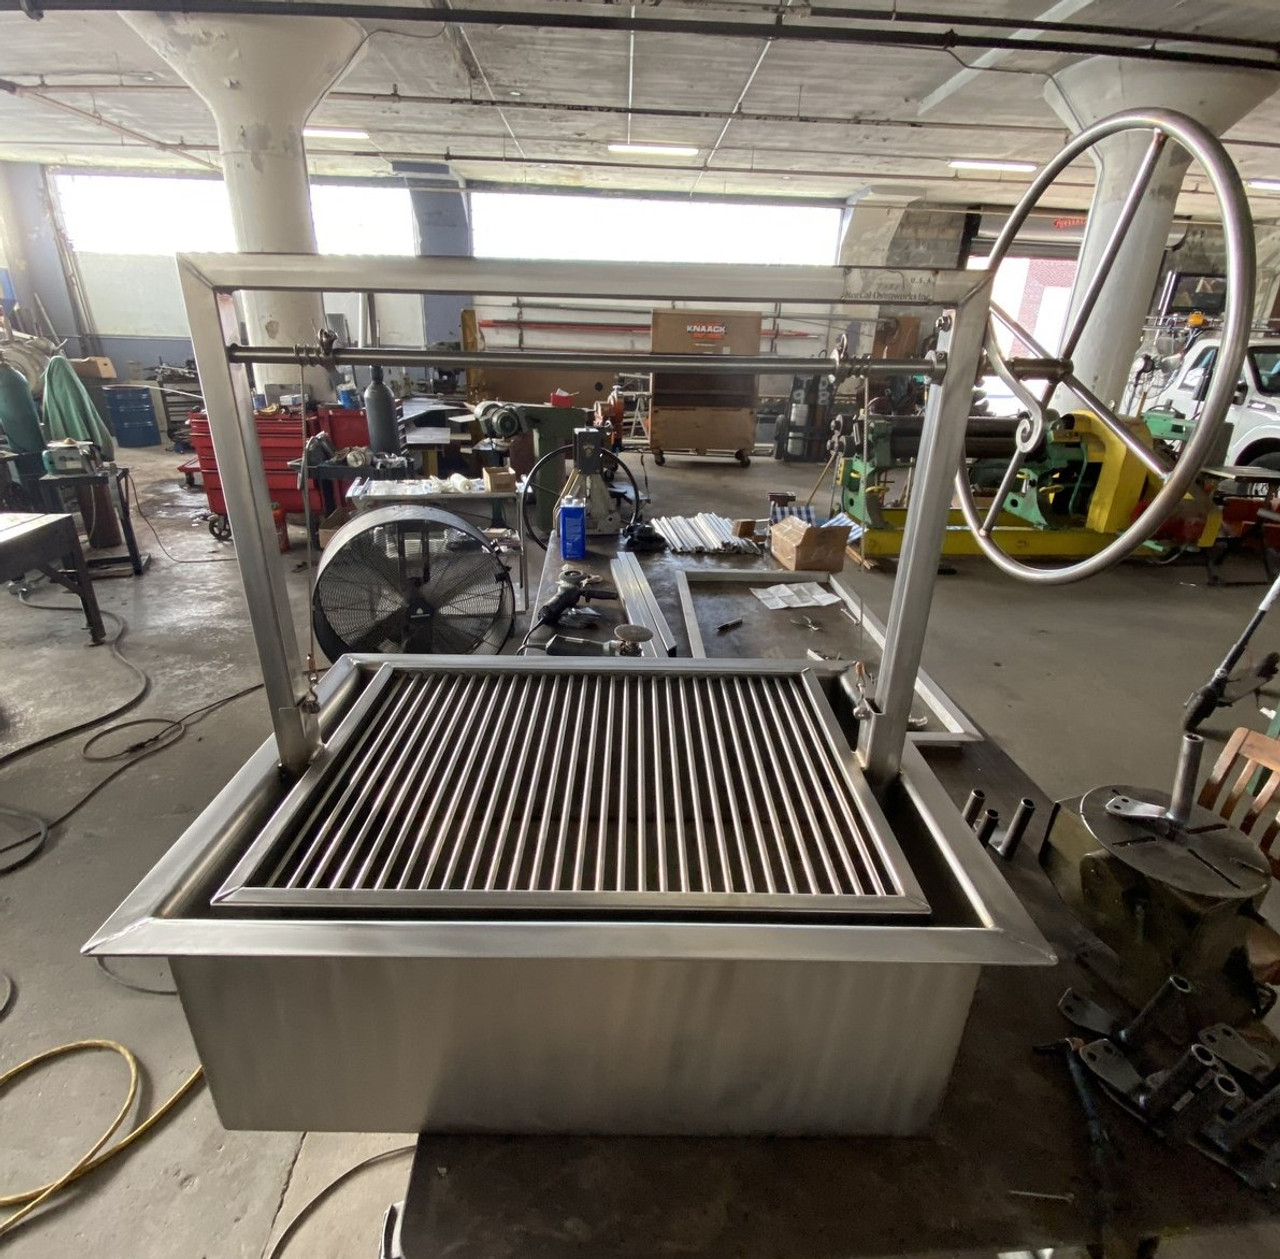 Stainless Steel Counter Drop-In Grill in the Santa Maria Style